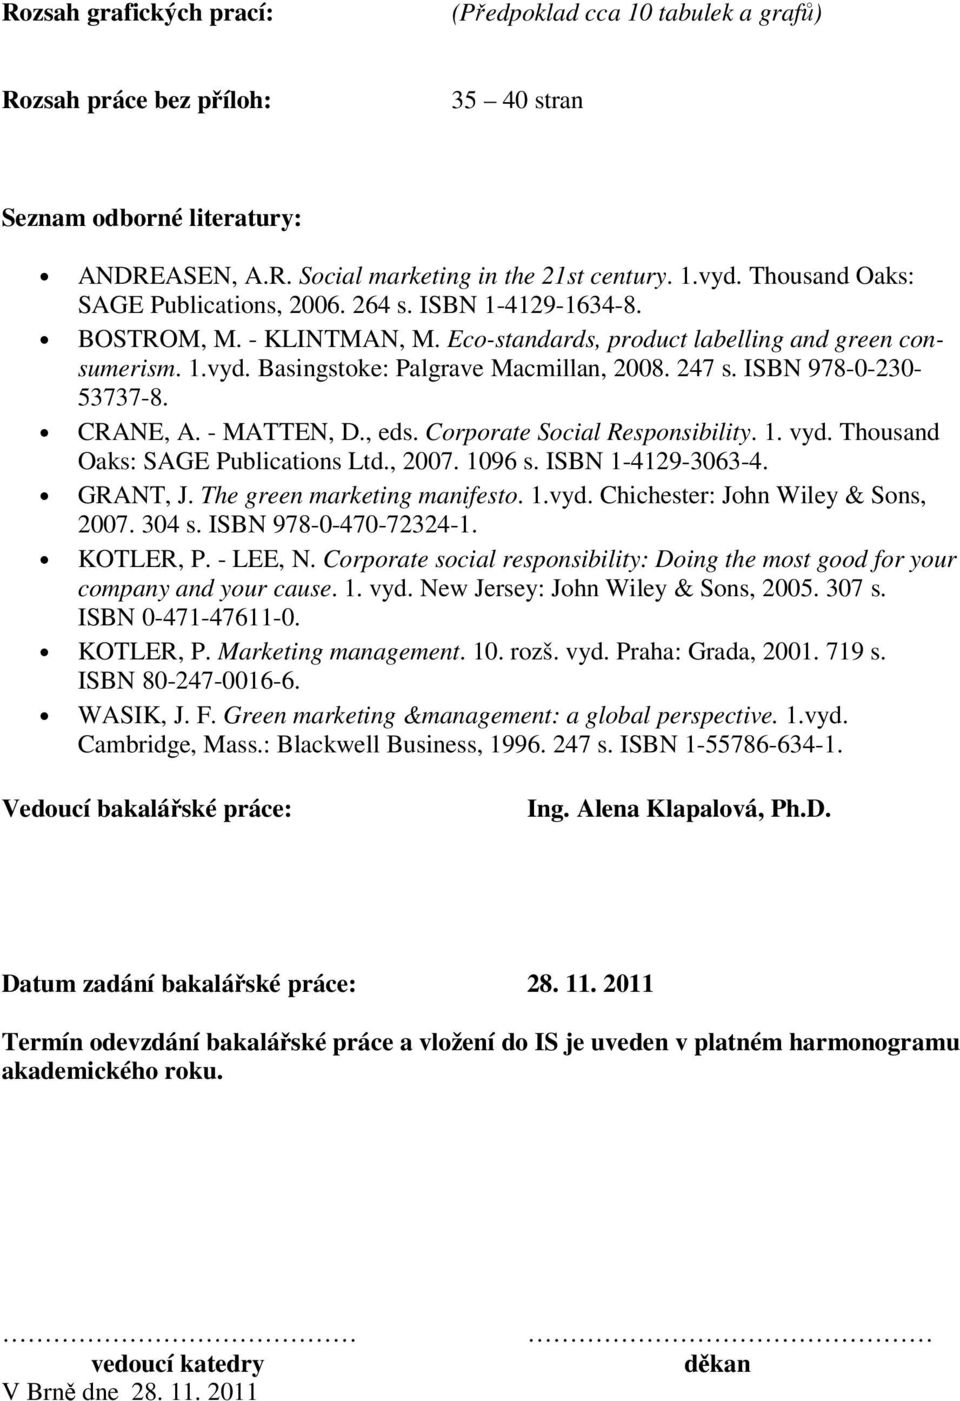 247 s. ISBN 978-0-230-53737-8. CRANE, A. - MATTEN, D., eds. Corporate Social Responsibility. 1. vyd. Thousand Oaks: SAGE Publications Ltd., 2007. 1096 s. ISBN 1-4129-3063-4. GRANT, J.